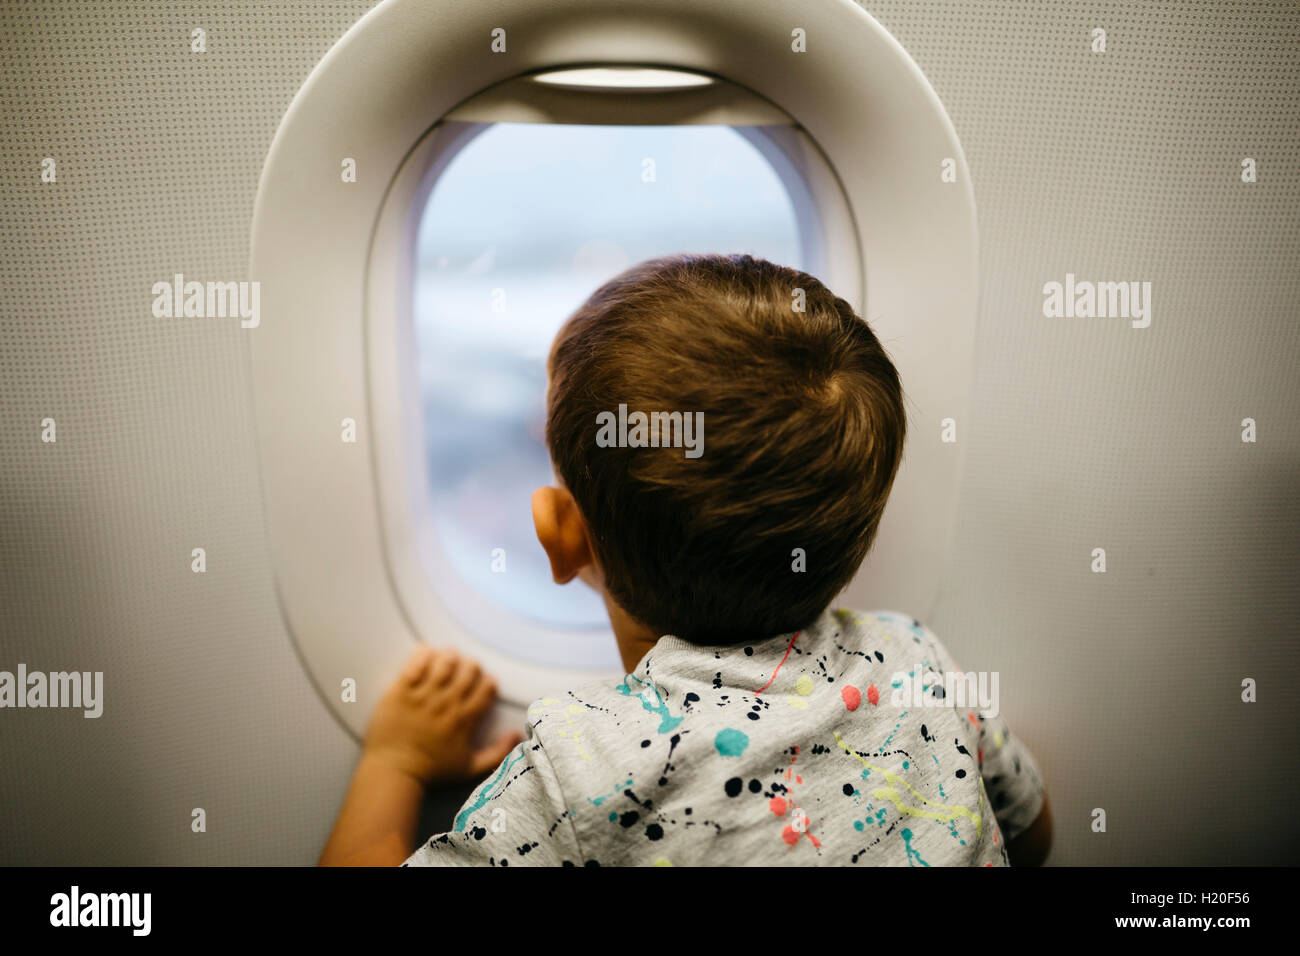 Little boy looking out of airplane window - Stock Image